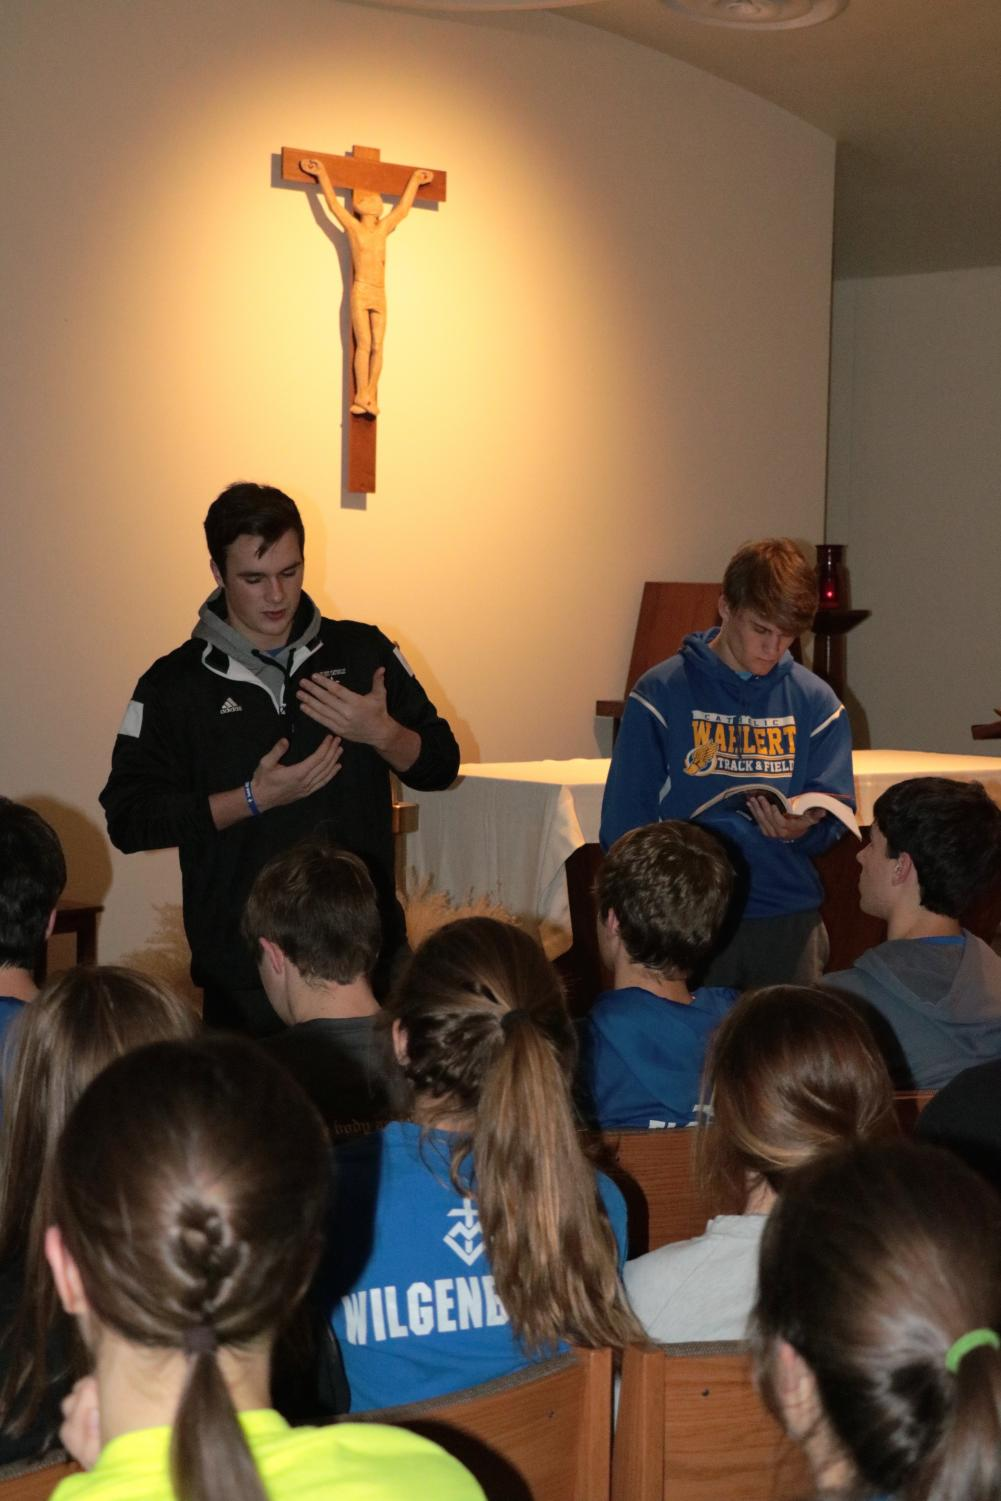 Joe Friend and Zach Kemp, '18, lead the discussion for FCA in the chapel.